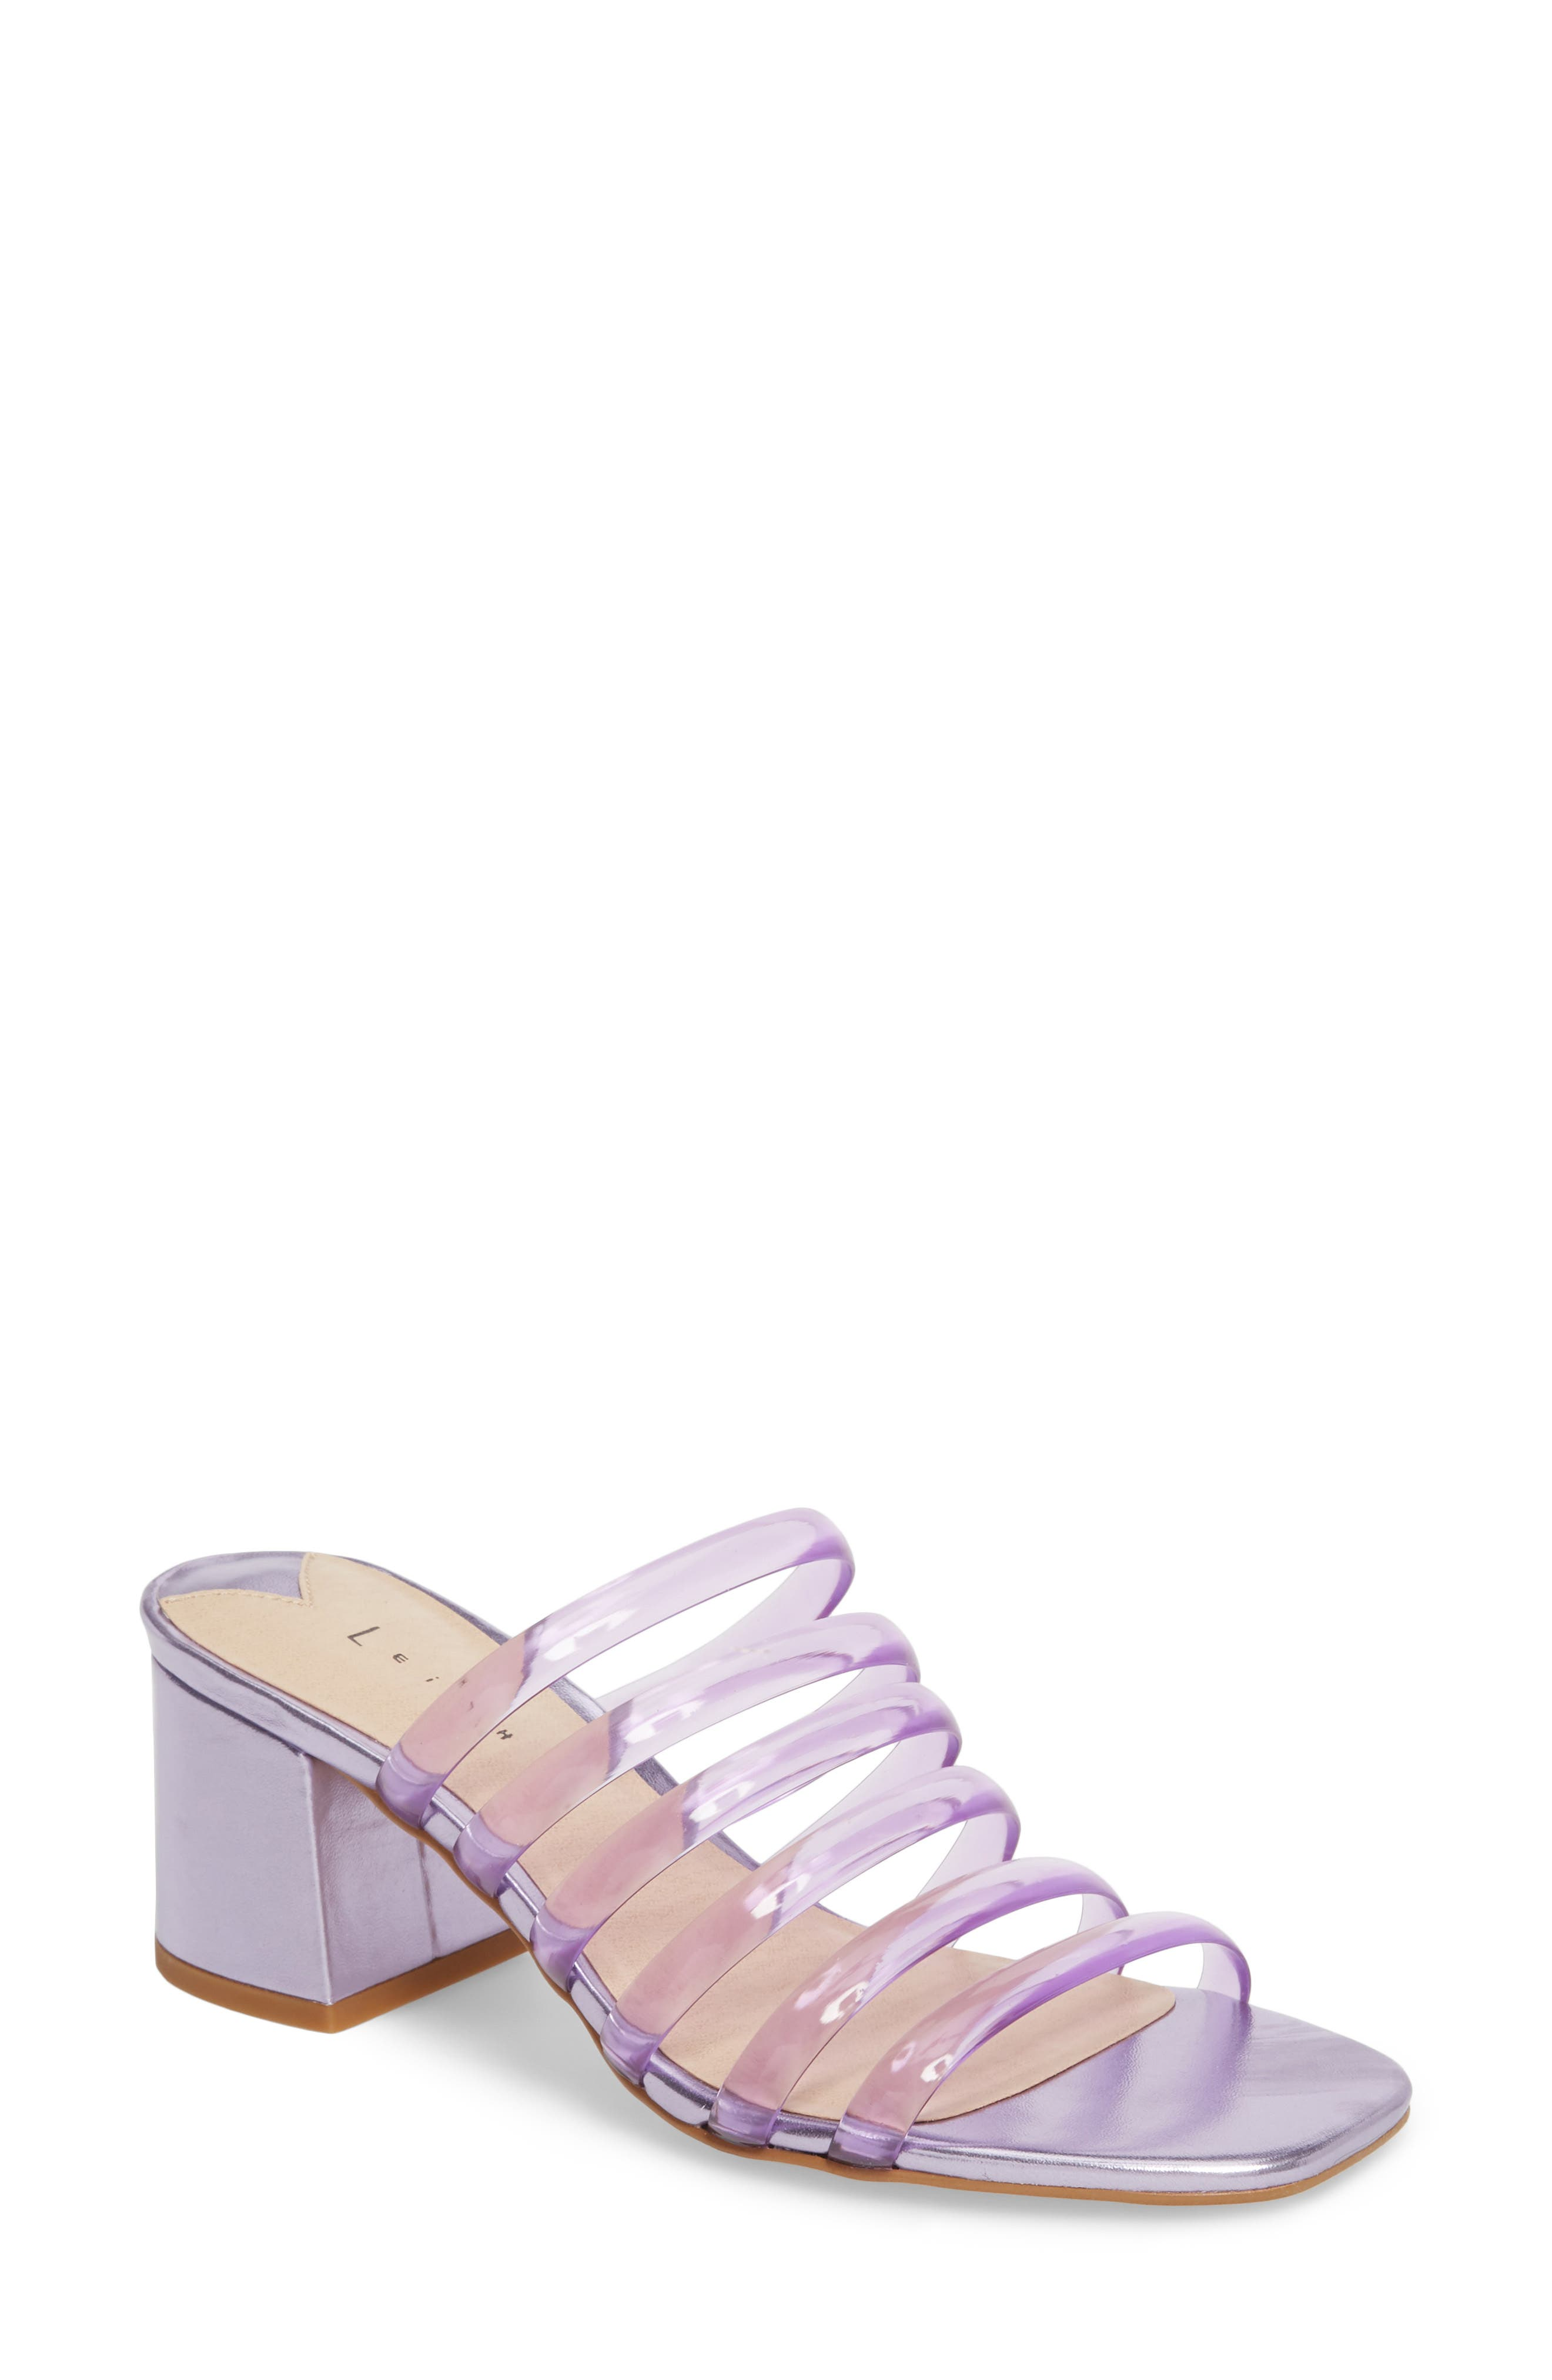 Cloud Jelly Slide Sandal,                             Main thumbnail 1, color,                             510